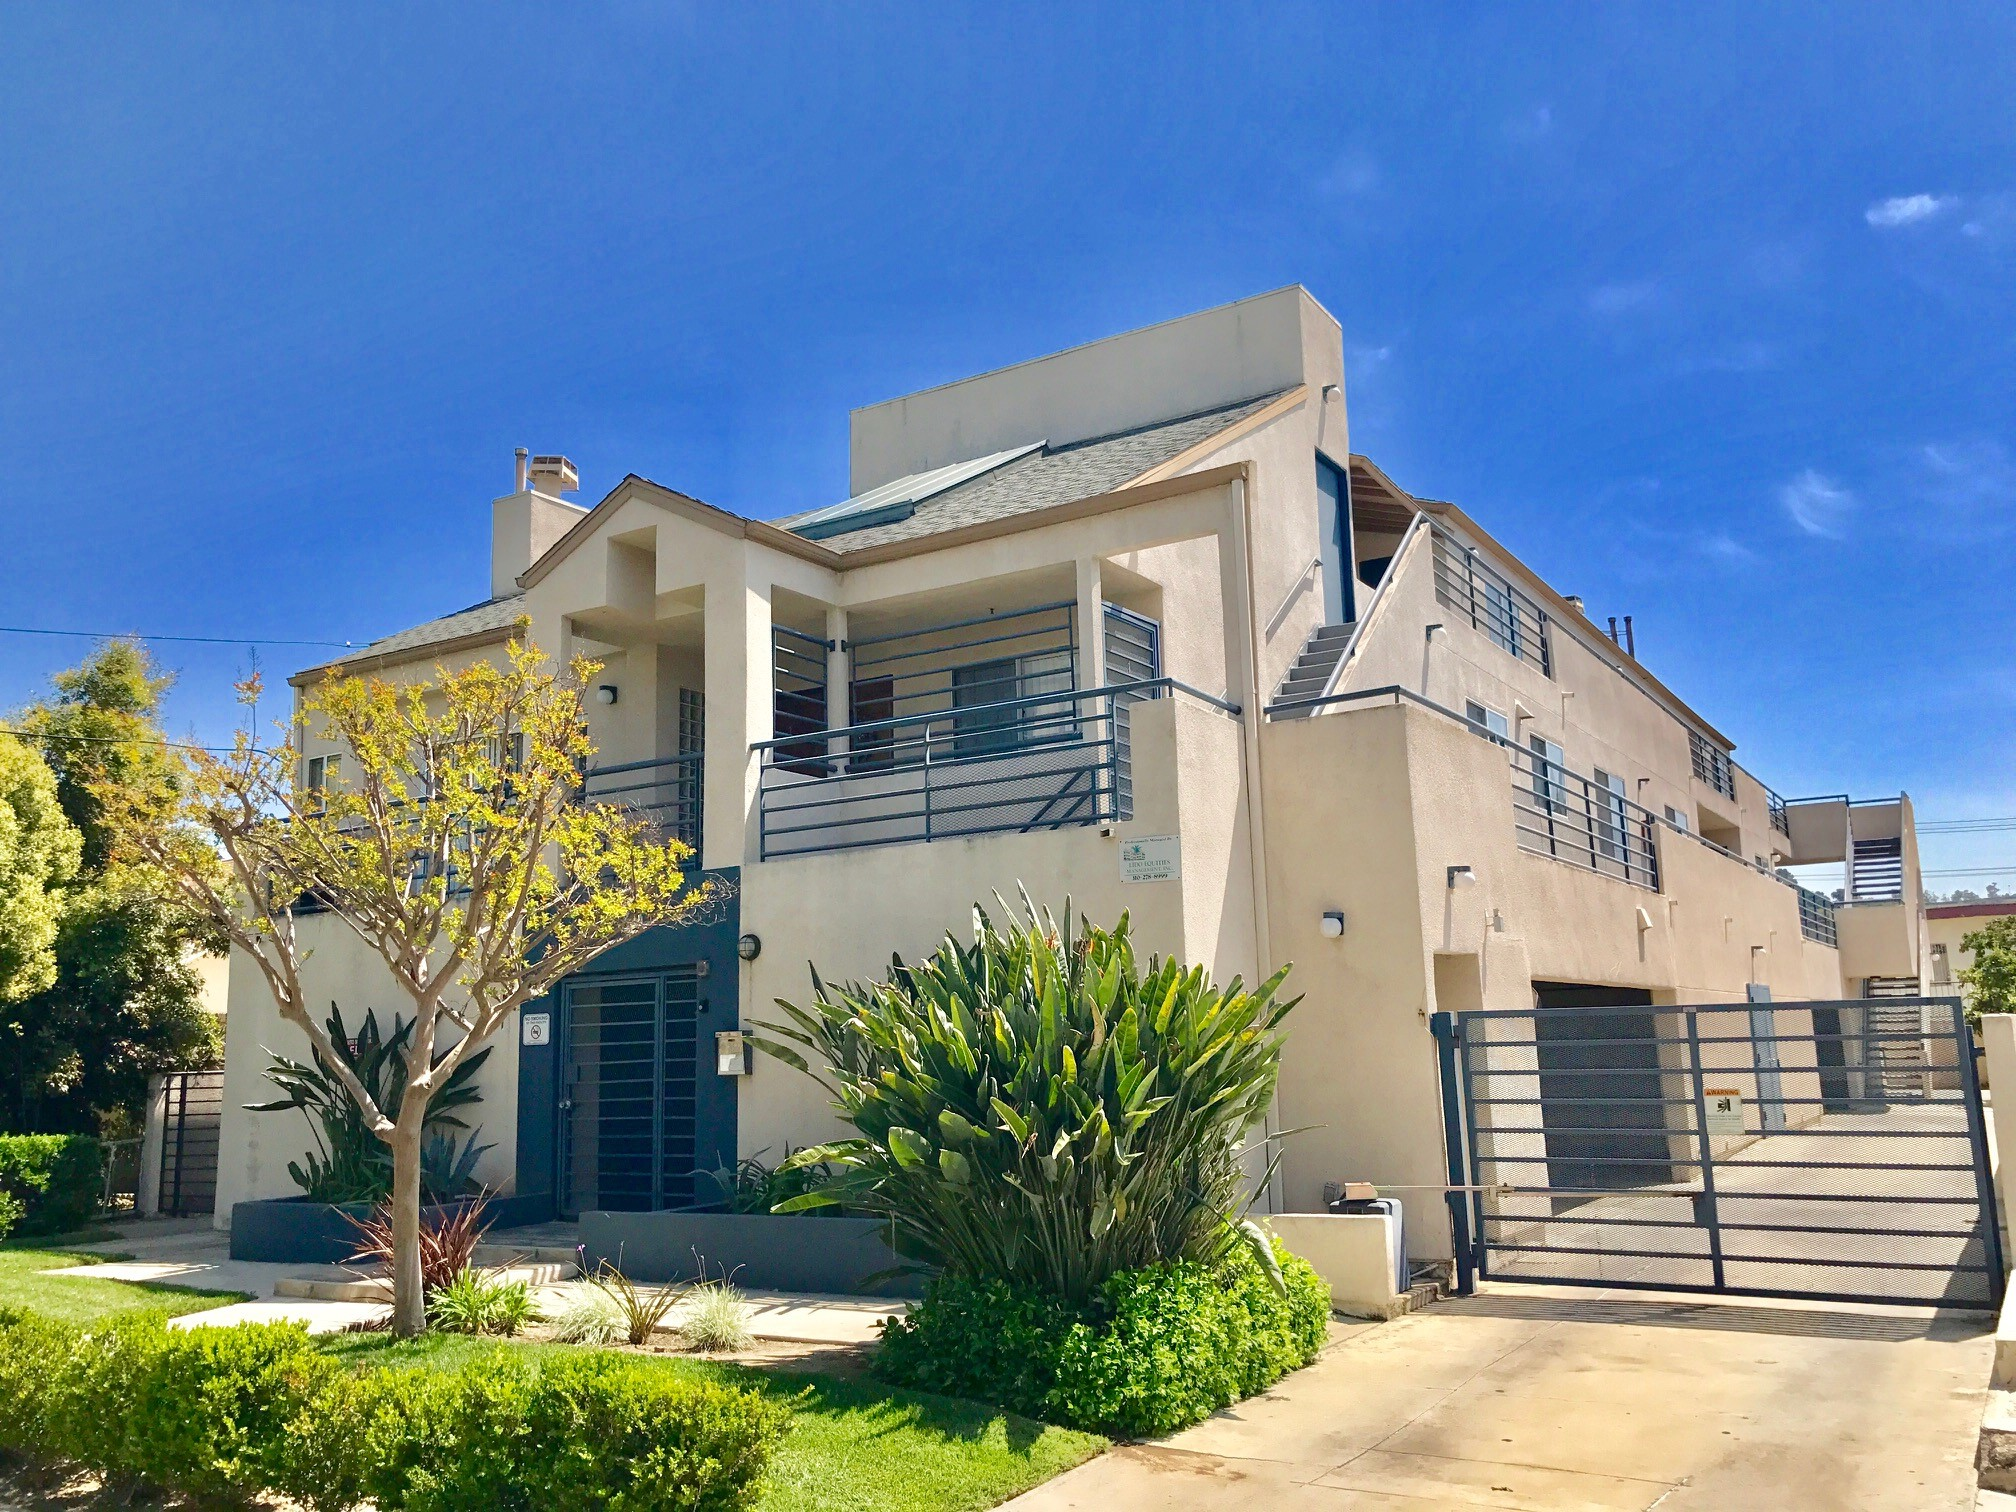 730 E. Raleigh Street, Glendale, CA 91205, 3 Bedroom's, 2 Bathroom's, Los Angeles County, California, Apartment for Rent